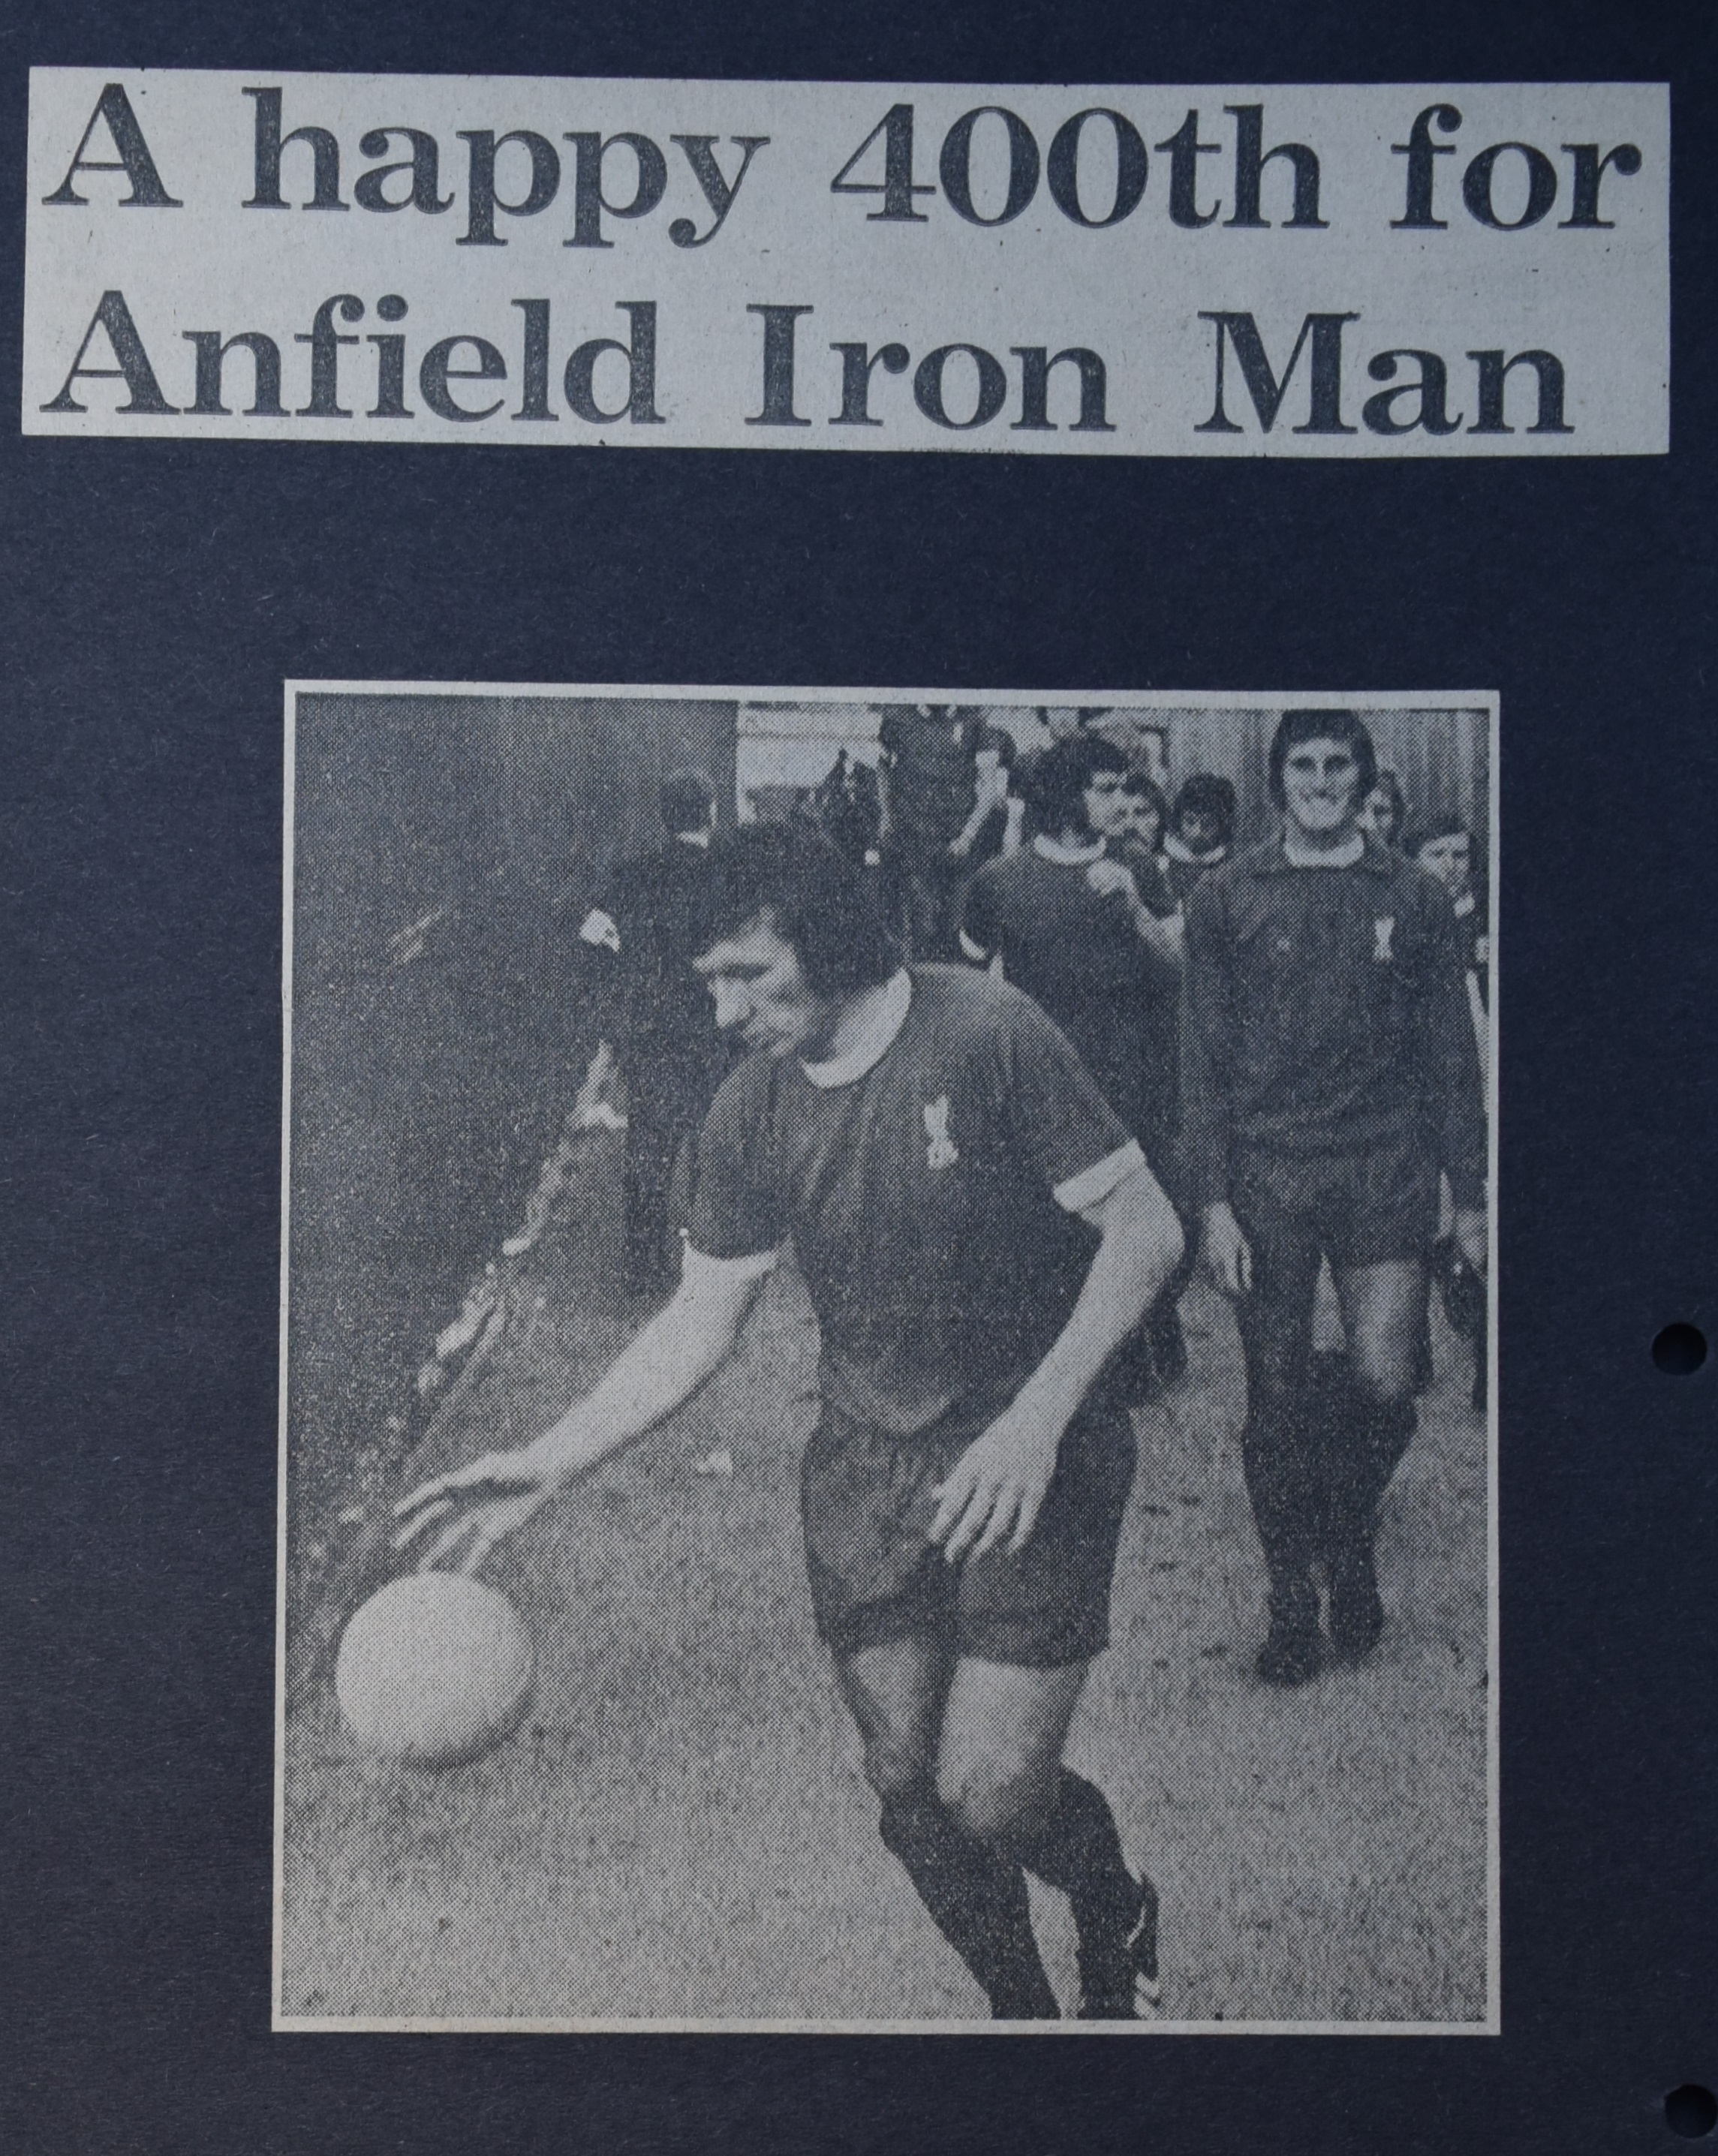 A happy 400th for Anfield Iron Man - 23 August 1972